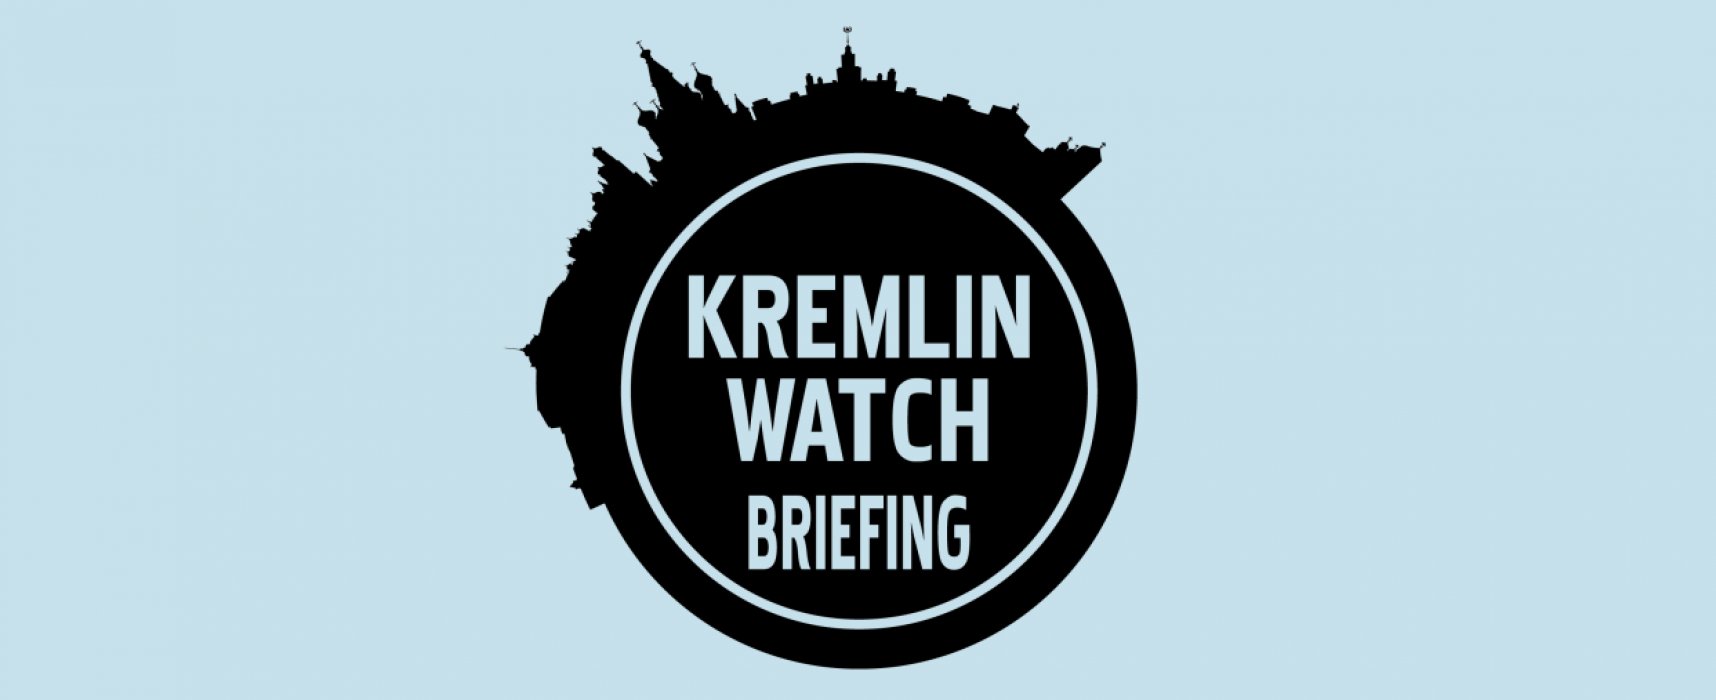 Kremlin Watch Briefing: The West should learn from the Baltics